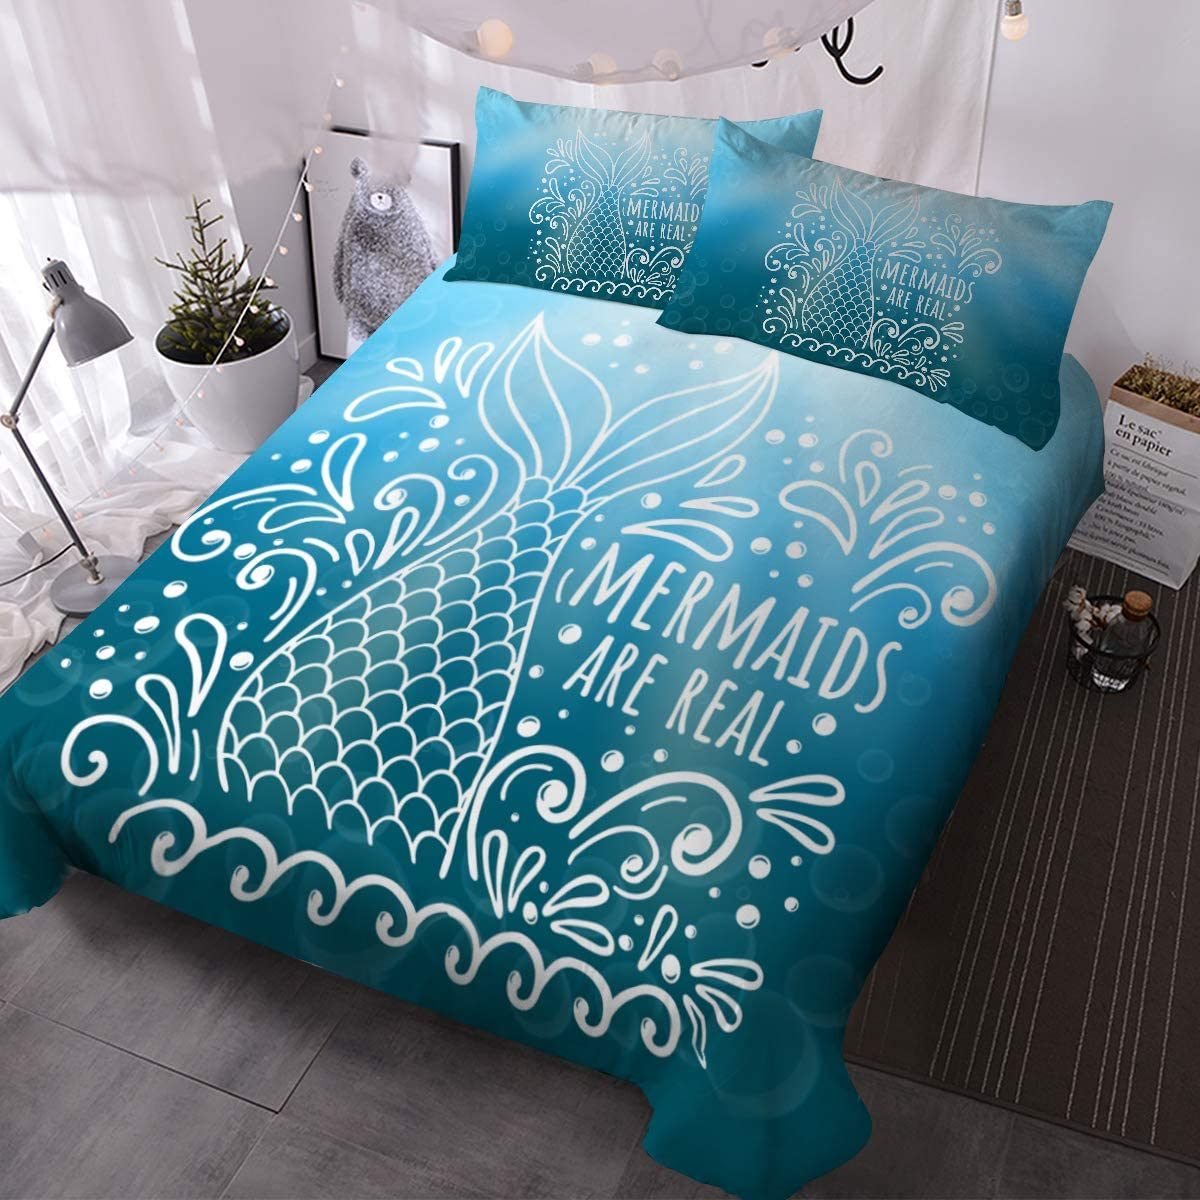 Mermaids Are Real Bedding Set-Coastal Passion